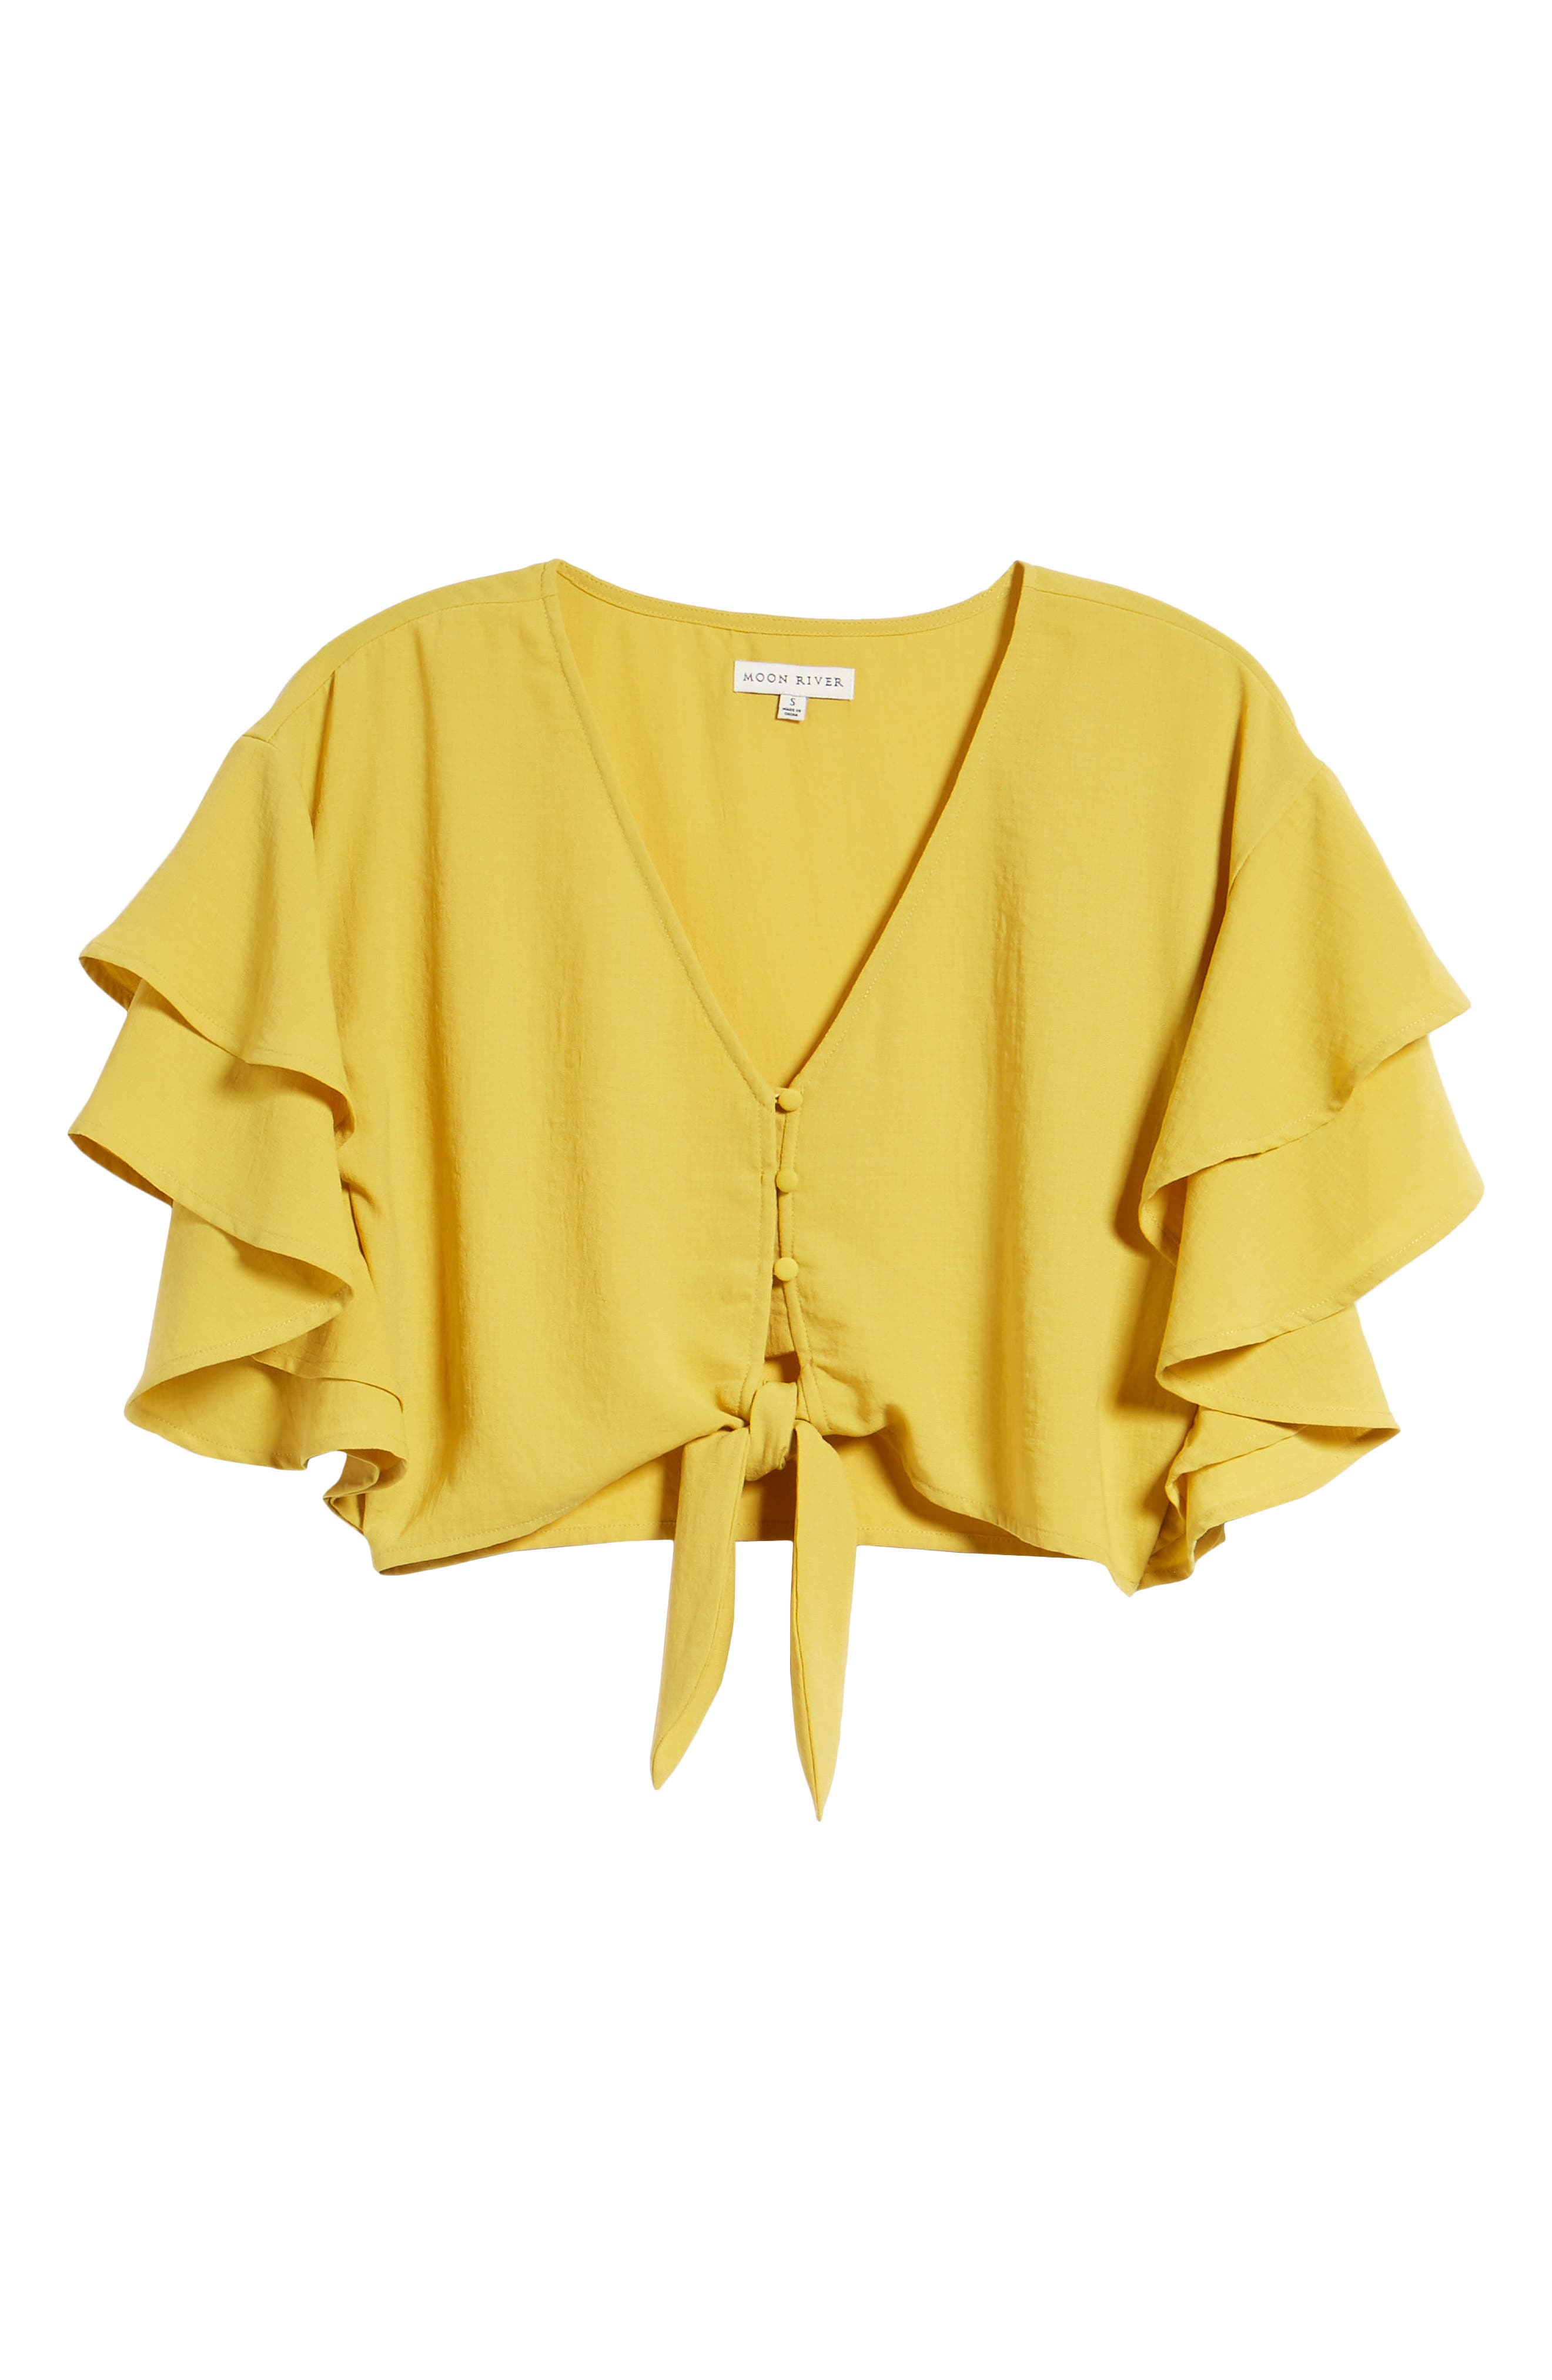 MOON RIVER,                             Ruffle Sleeve Crop Top,                             Alternate thumbnail 7, color,                             753